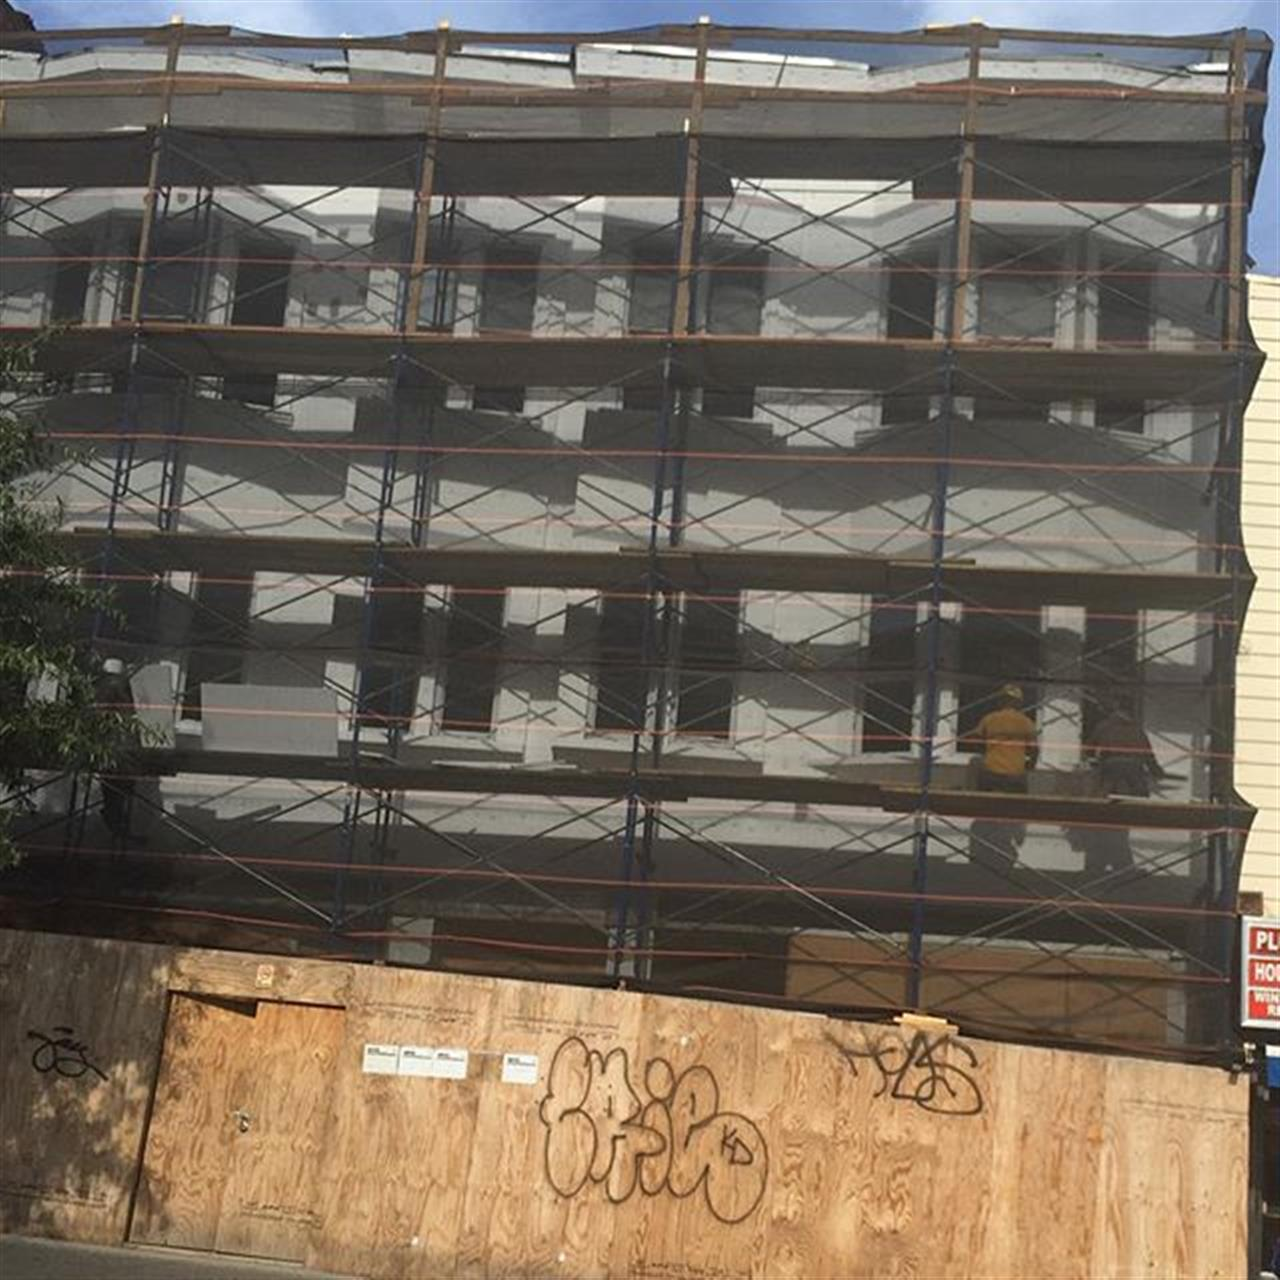 #TheBronxIs continuous  growth Everywhere you look building are being constructed in the #Bronx  #OSCARRIGAMONTY #OR #Bronx #RealEstate #trulia #realtor #zillow #homes #property #bronx #newyorkcity #NYC #bronxdoesitbest #eyesonthebronx #pantigagroup #leadingre Link in bio